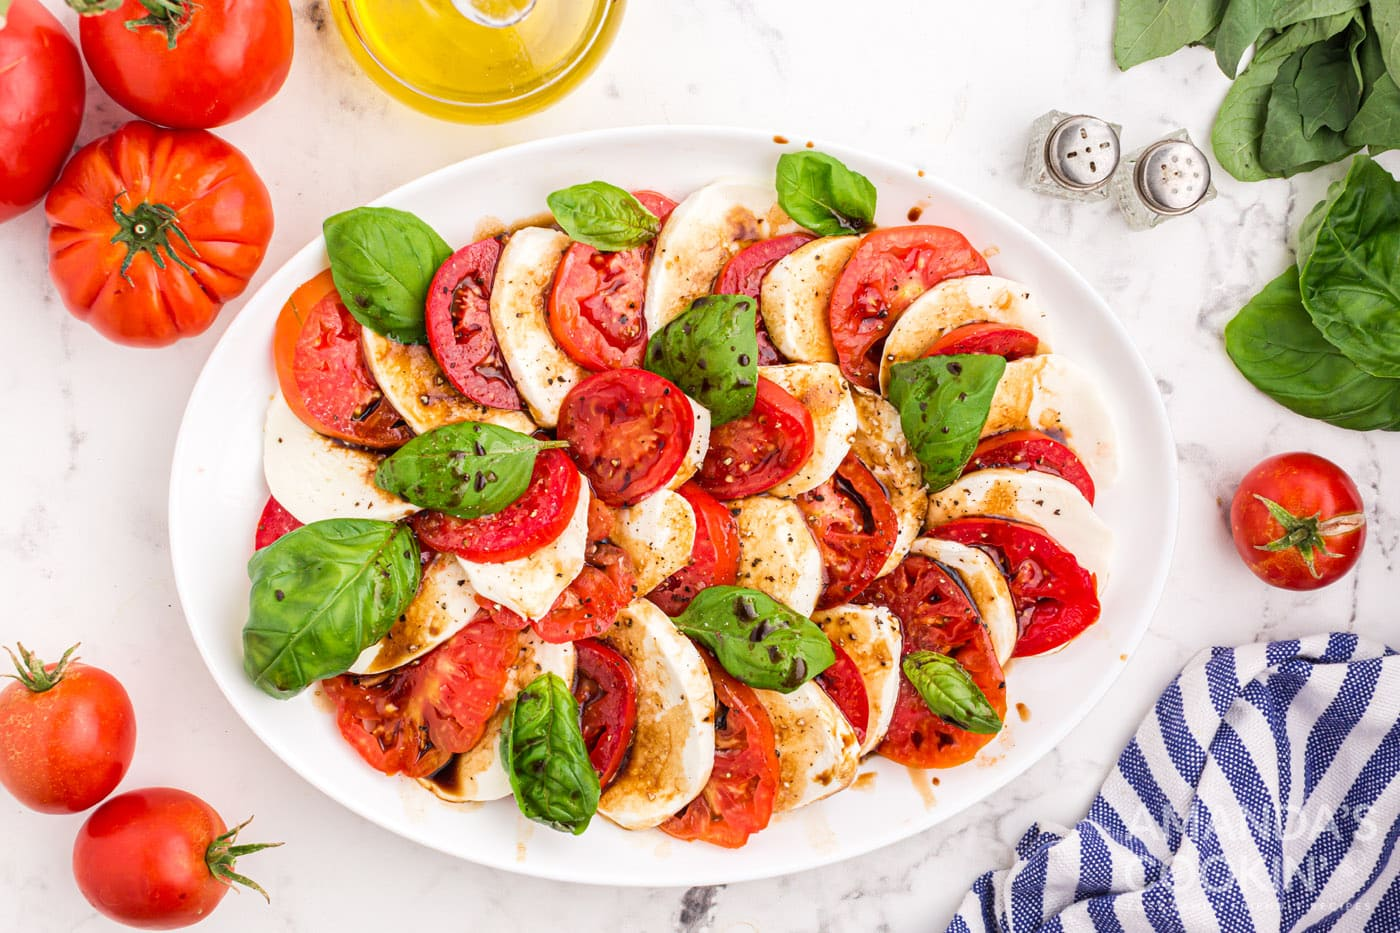 caprese salad with balsamic and olive oil dressing